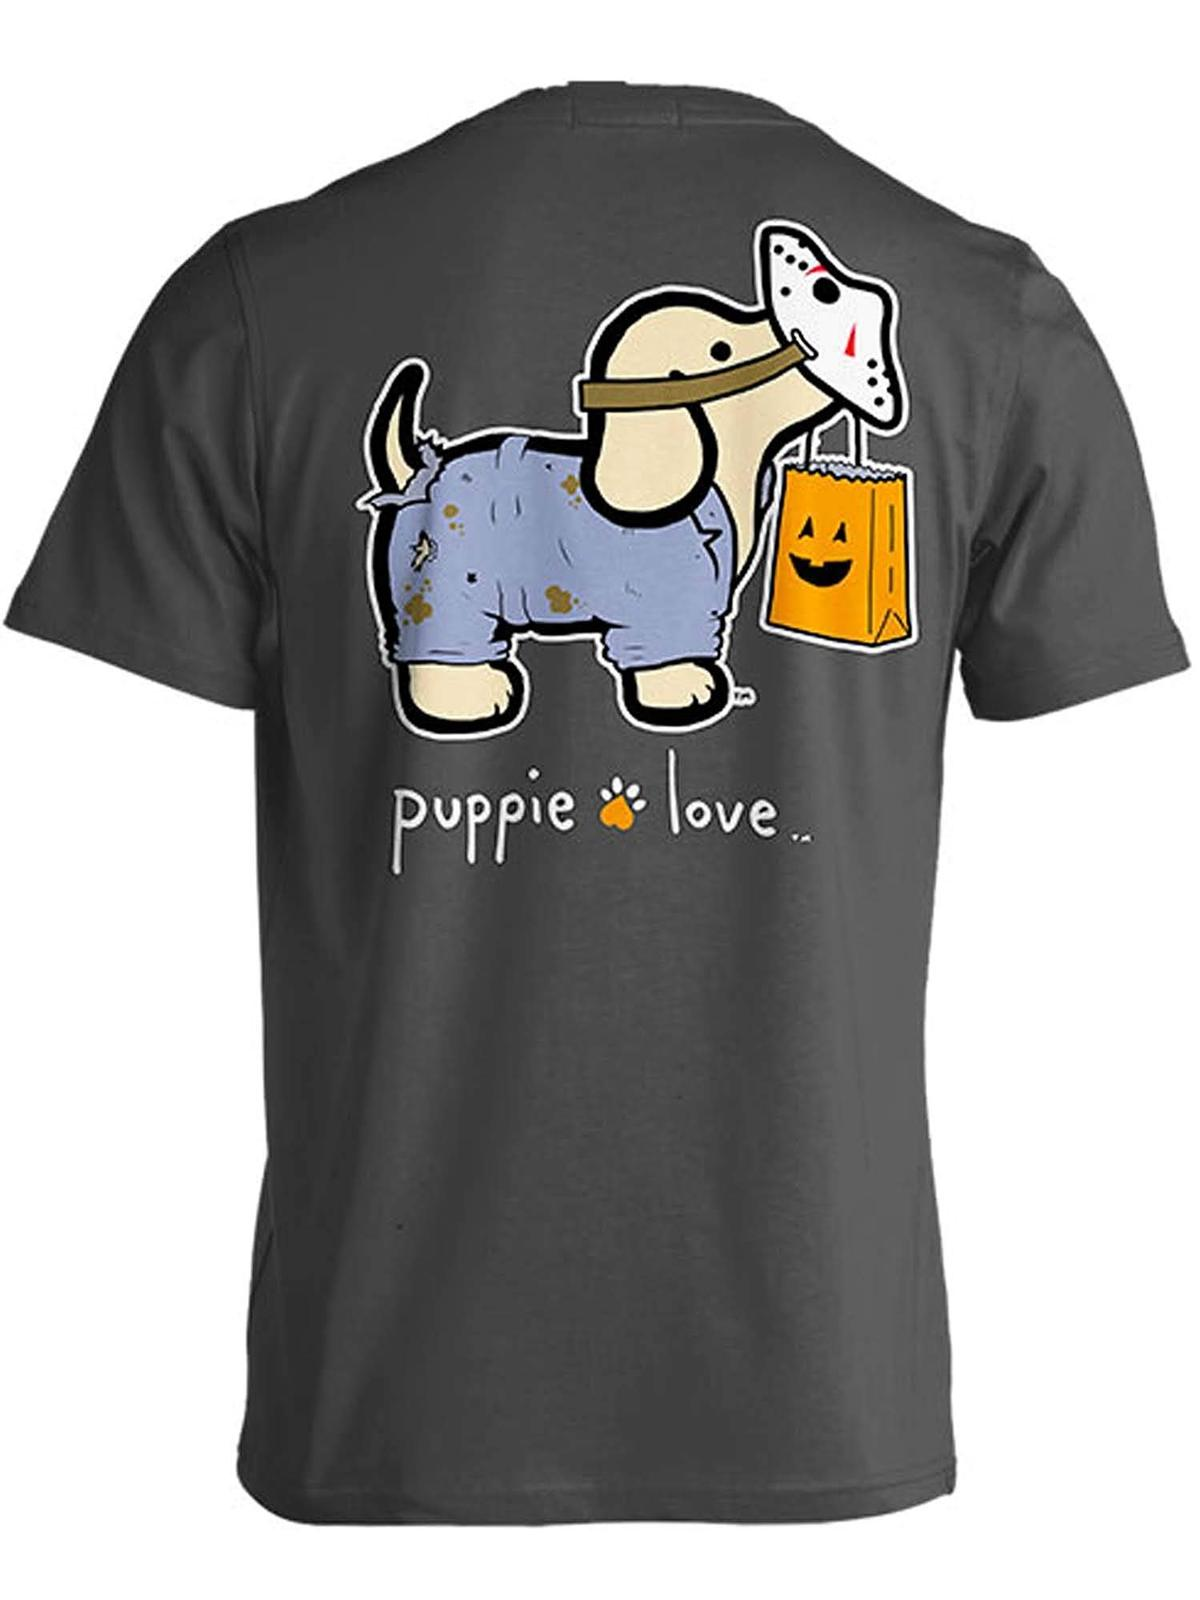 Puppie Love Rescue Dog Adult Unisex Short Sleeve Graphic T-Shirt,Trick-Treat Pup